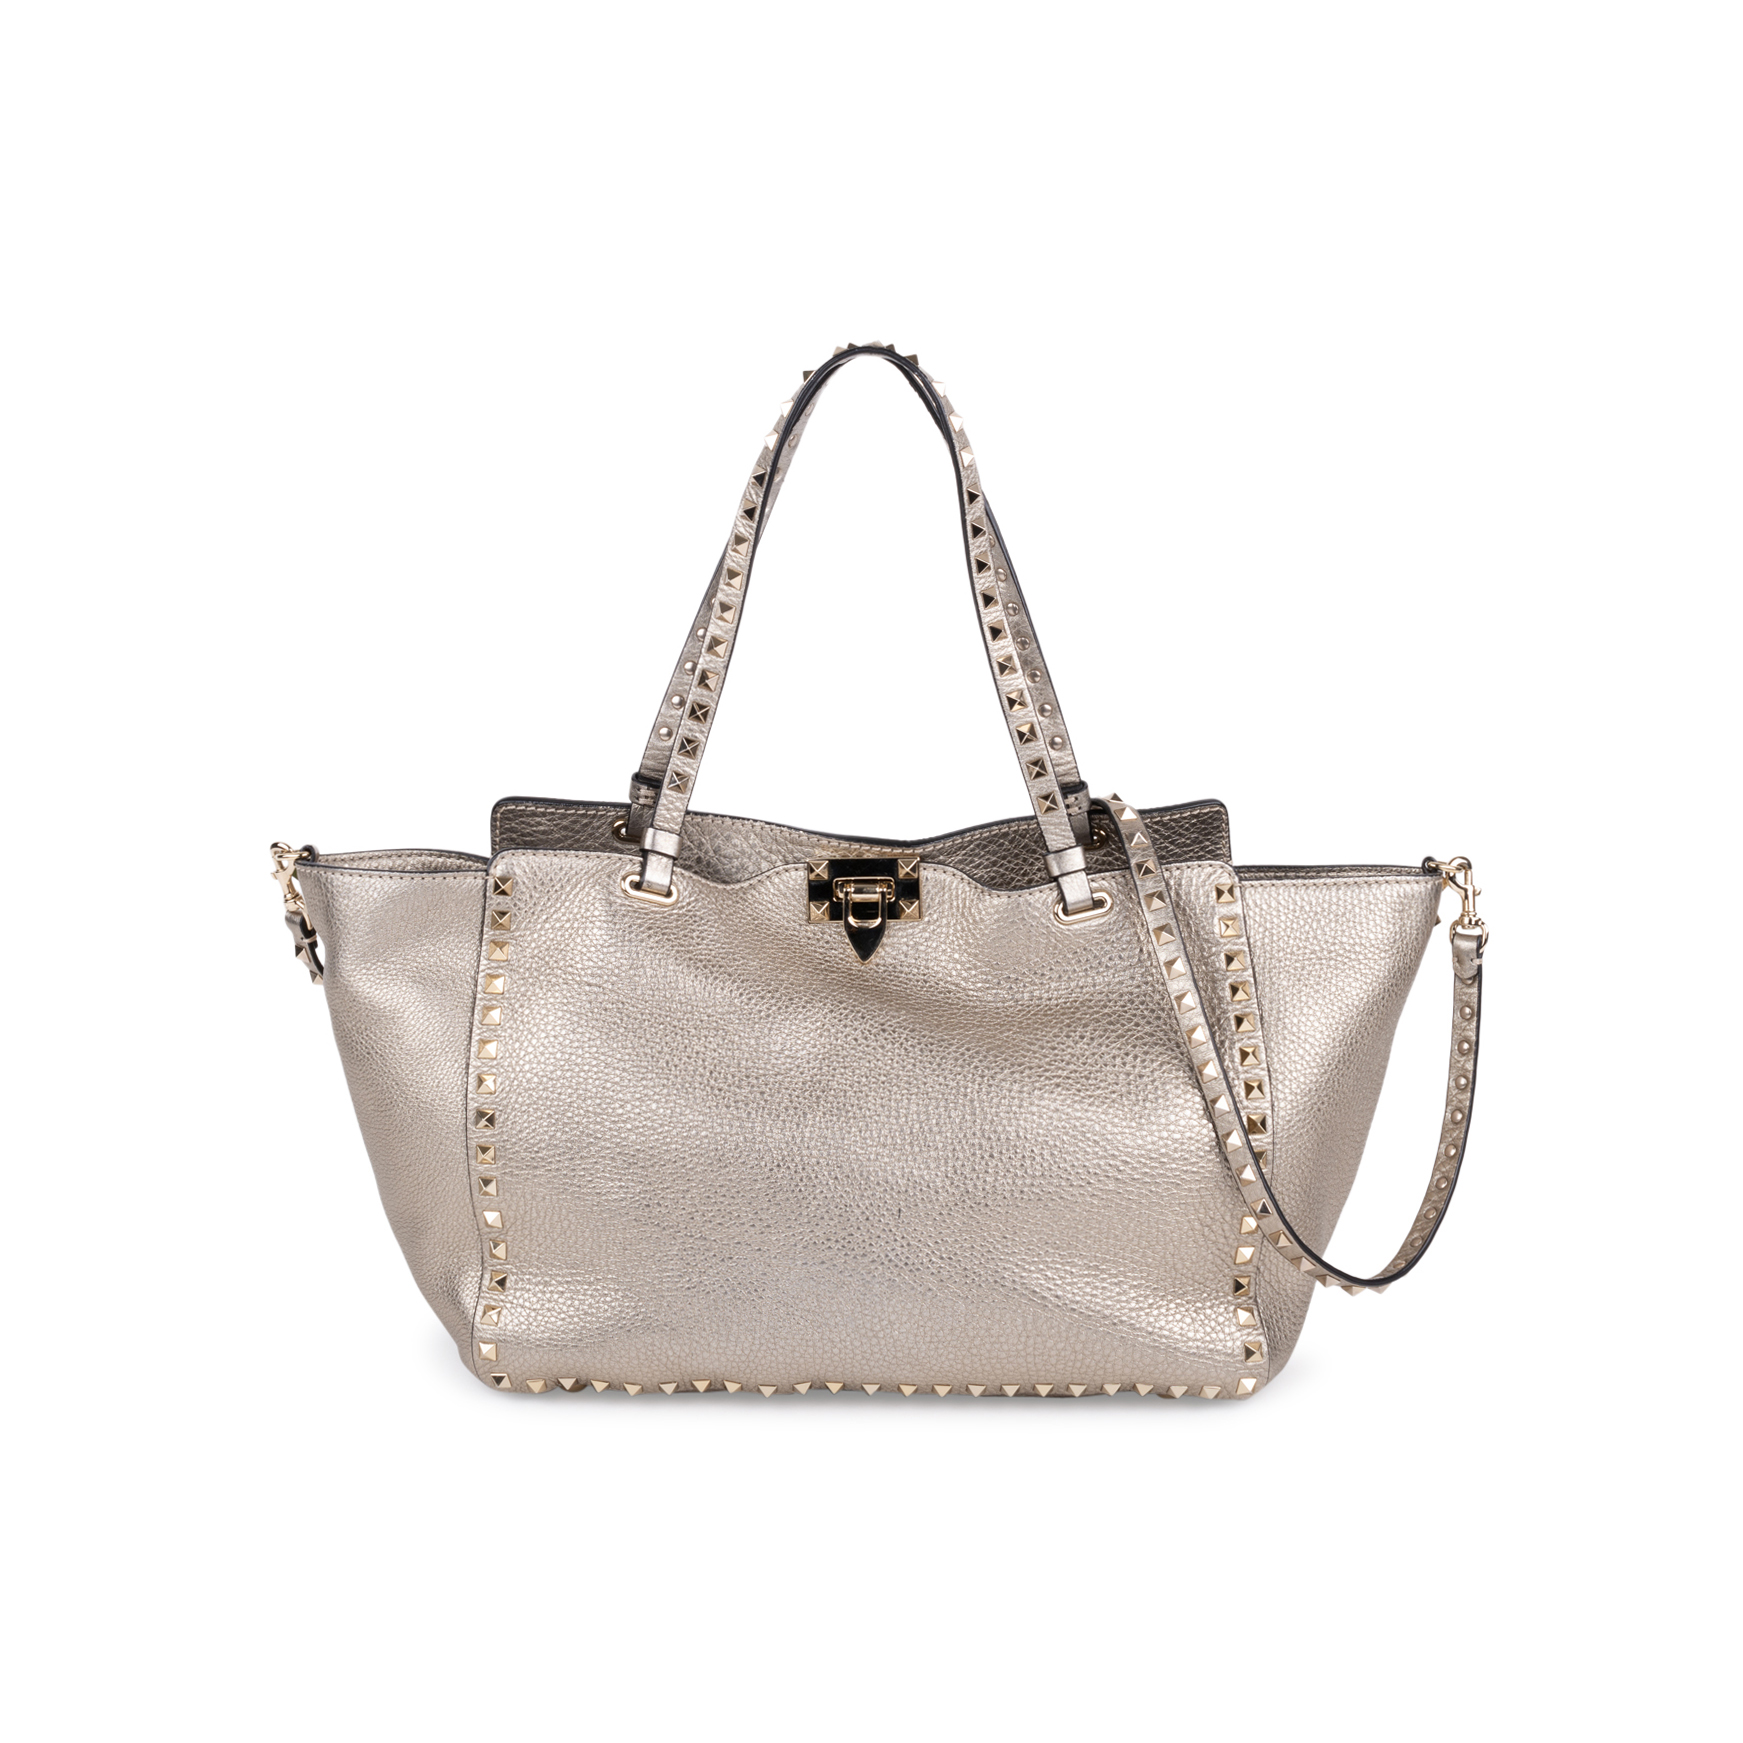 ac95a8e6f04 Authentic Second Hand Valentino Silver Rockstud Medium Tote Bag  (PSS-097-00132) - THE FIFTH COLLECTION